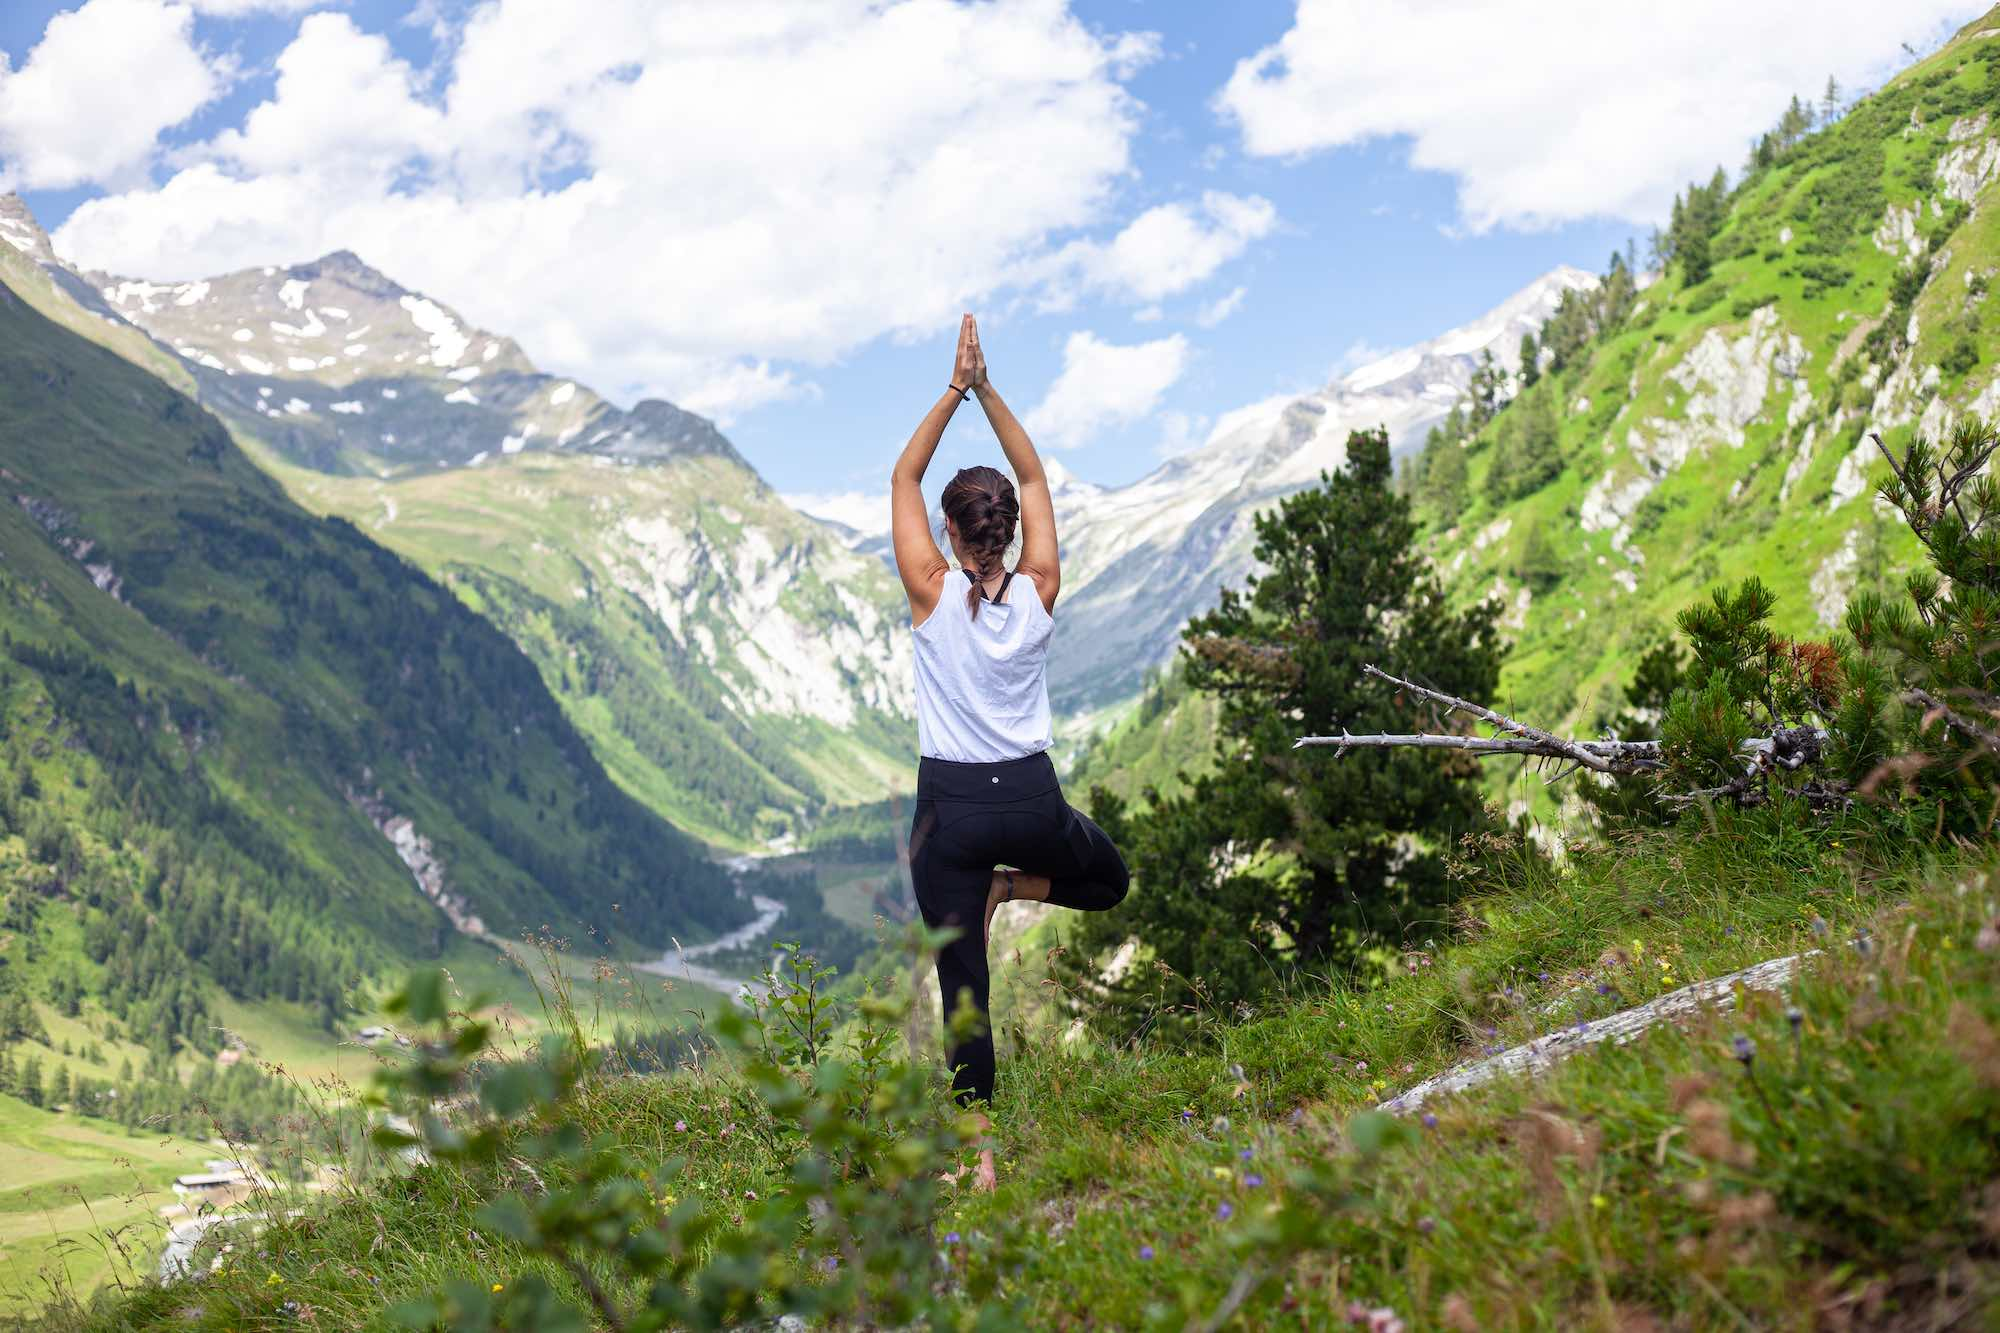 Yoga in the mountains at Kals Am Grossglockner